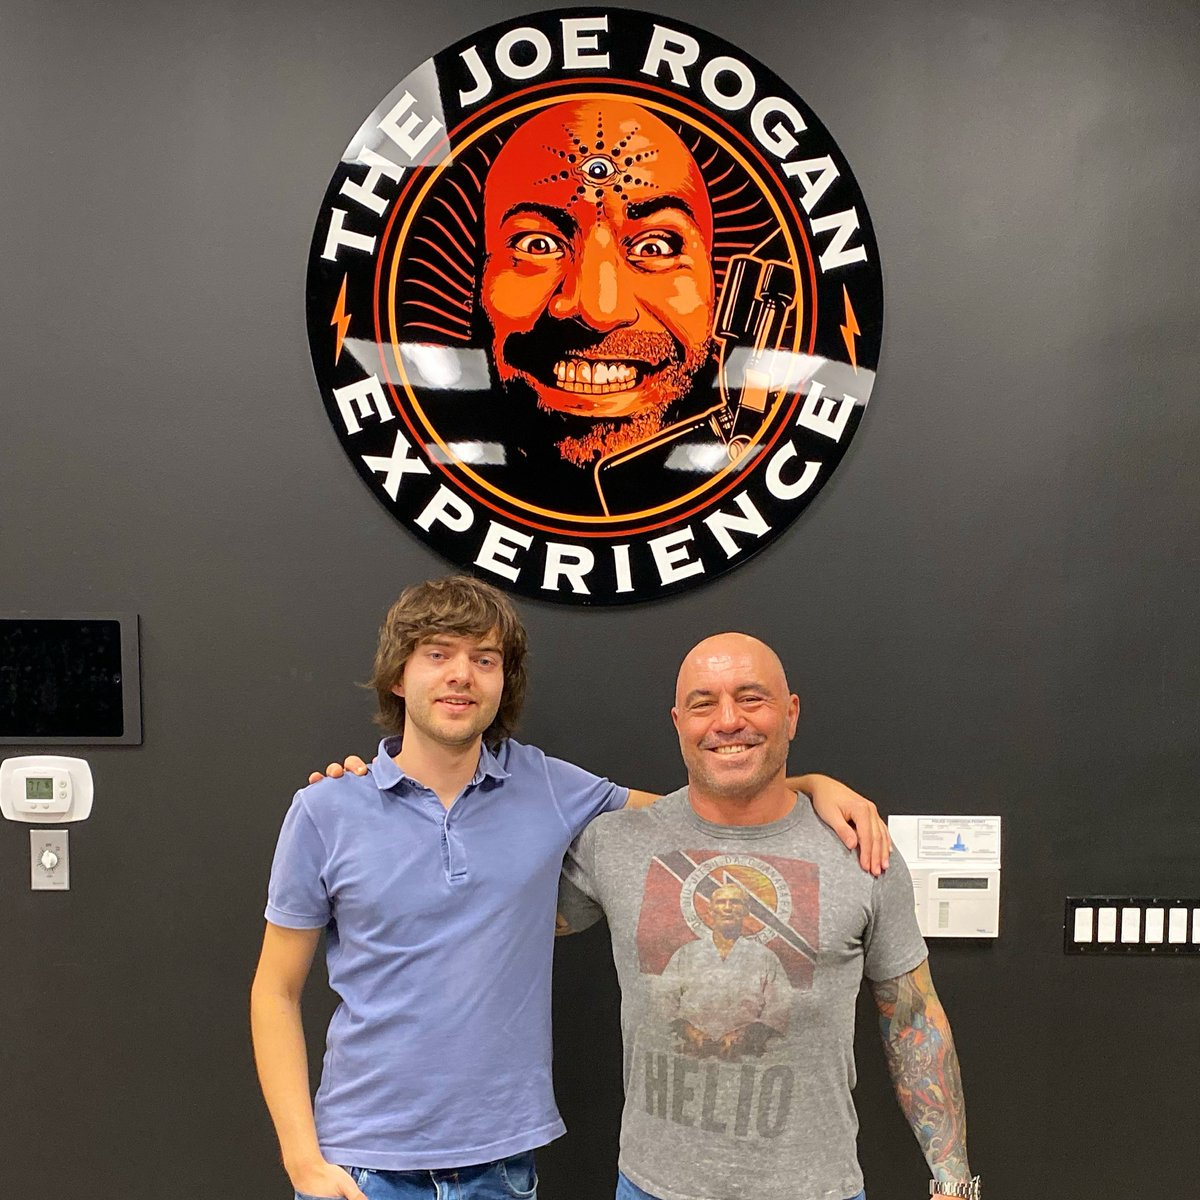 Had lots of fun with @joerogan, discussing The Ocean Cleanup, technology, and the future youtu.be/whRVyywTov4